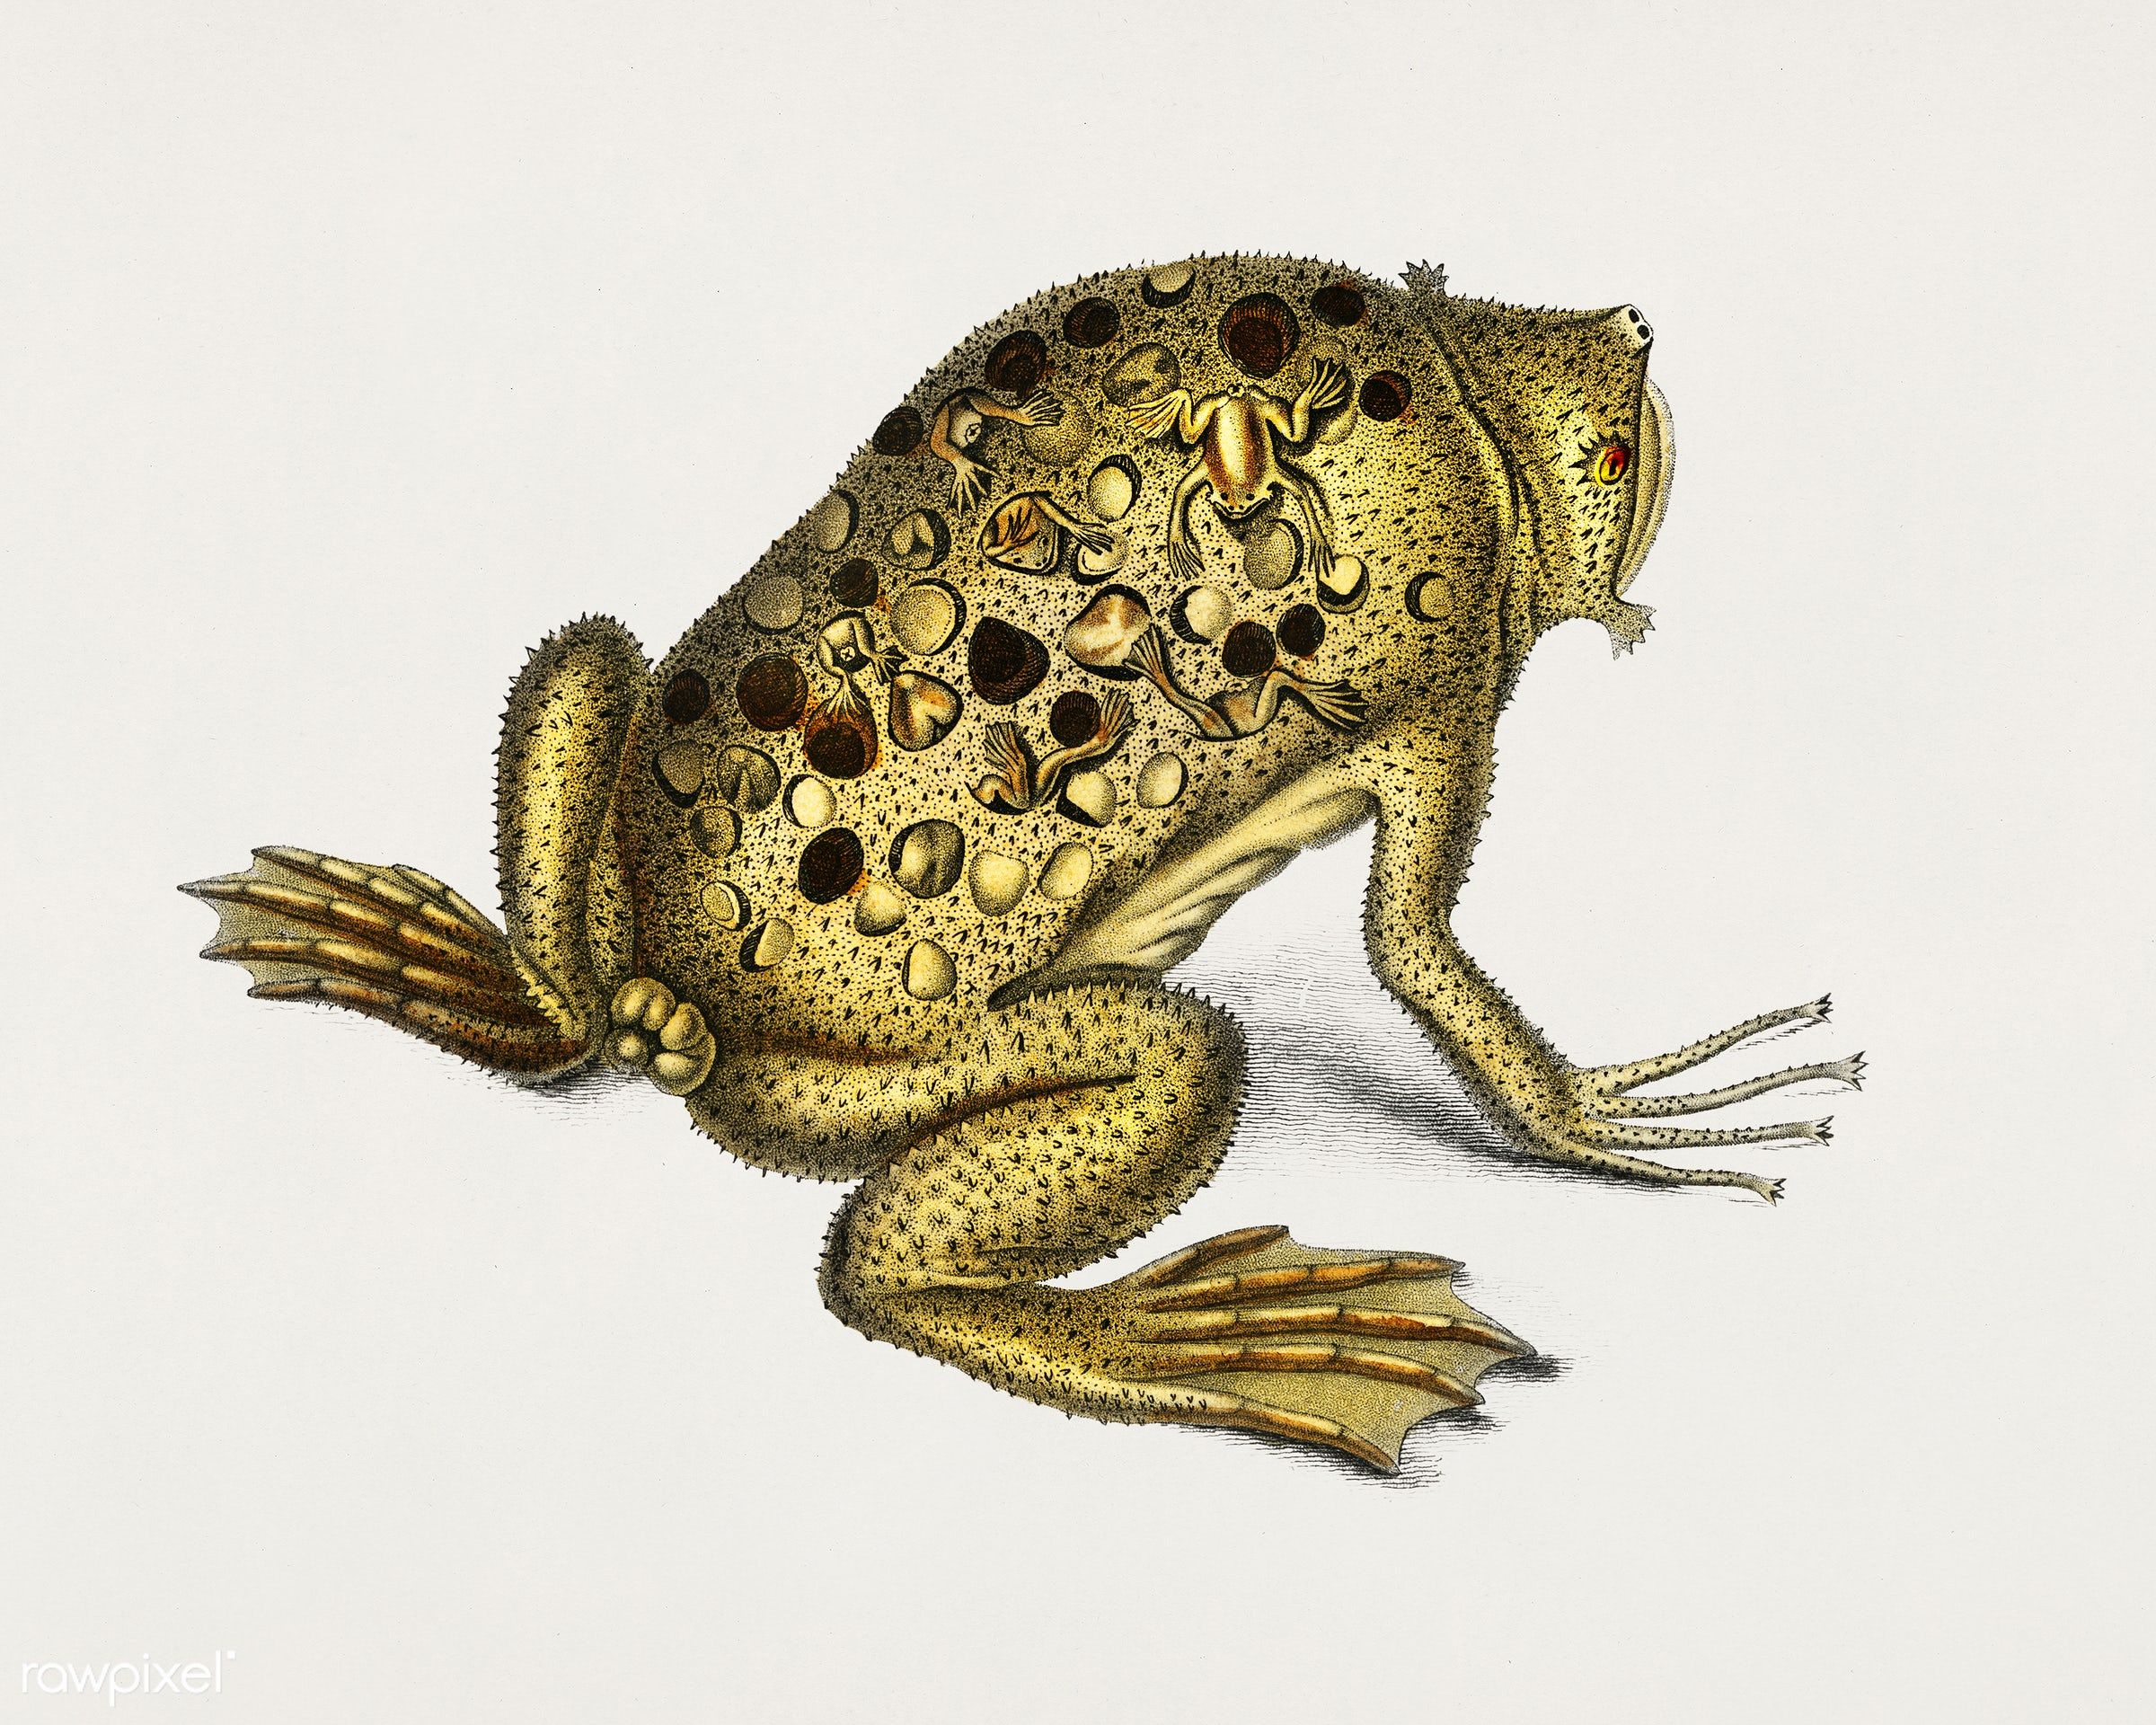 Surinam toad (Pipa americana) illustrated by Charles Dessalines D' Orbigny (1806-1876). Digitally enhanced from our own...